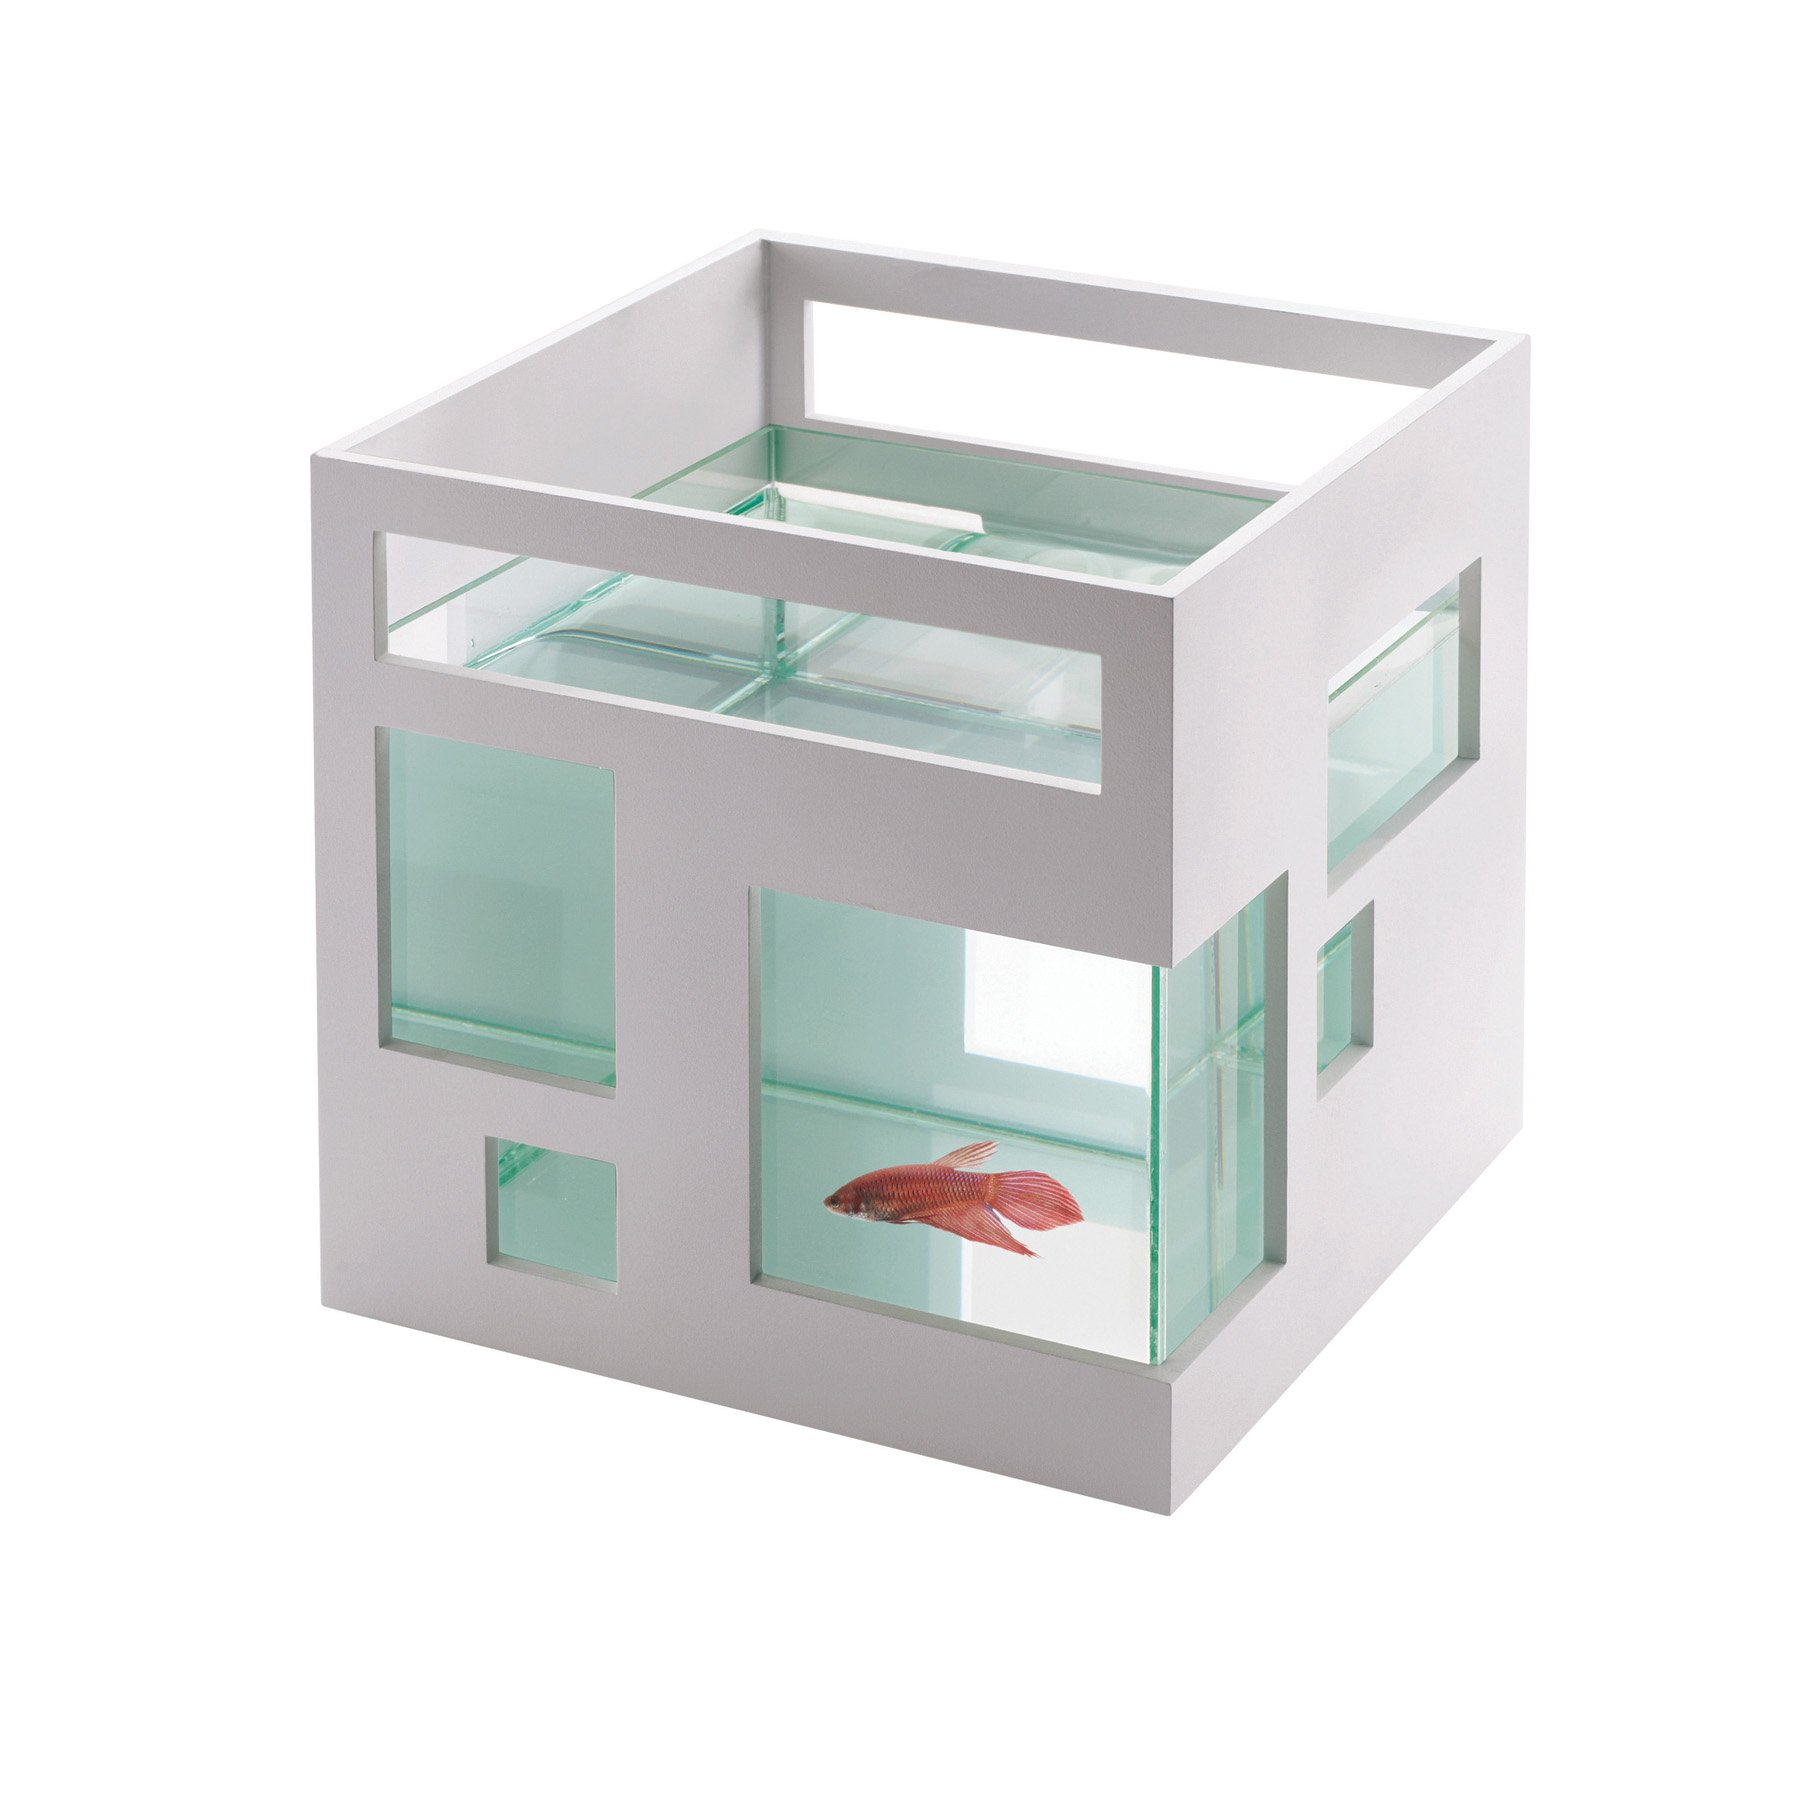 Buy Mini Goldfish Aquarium Now!